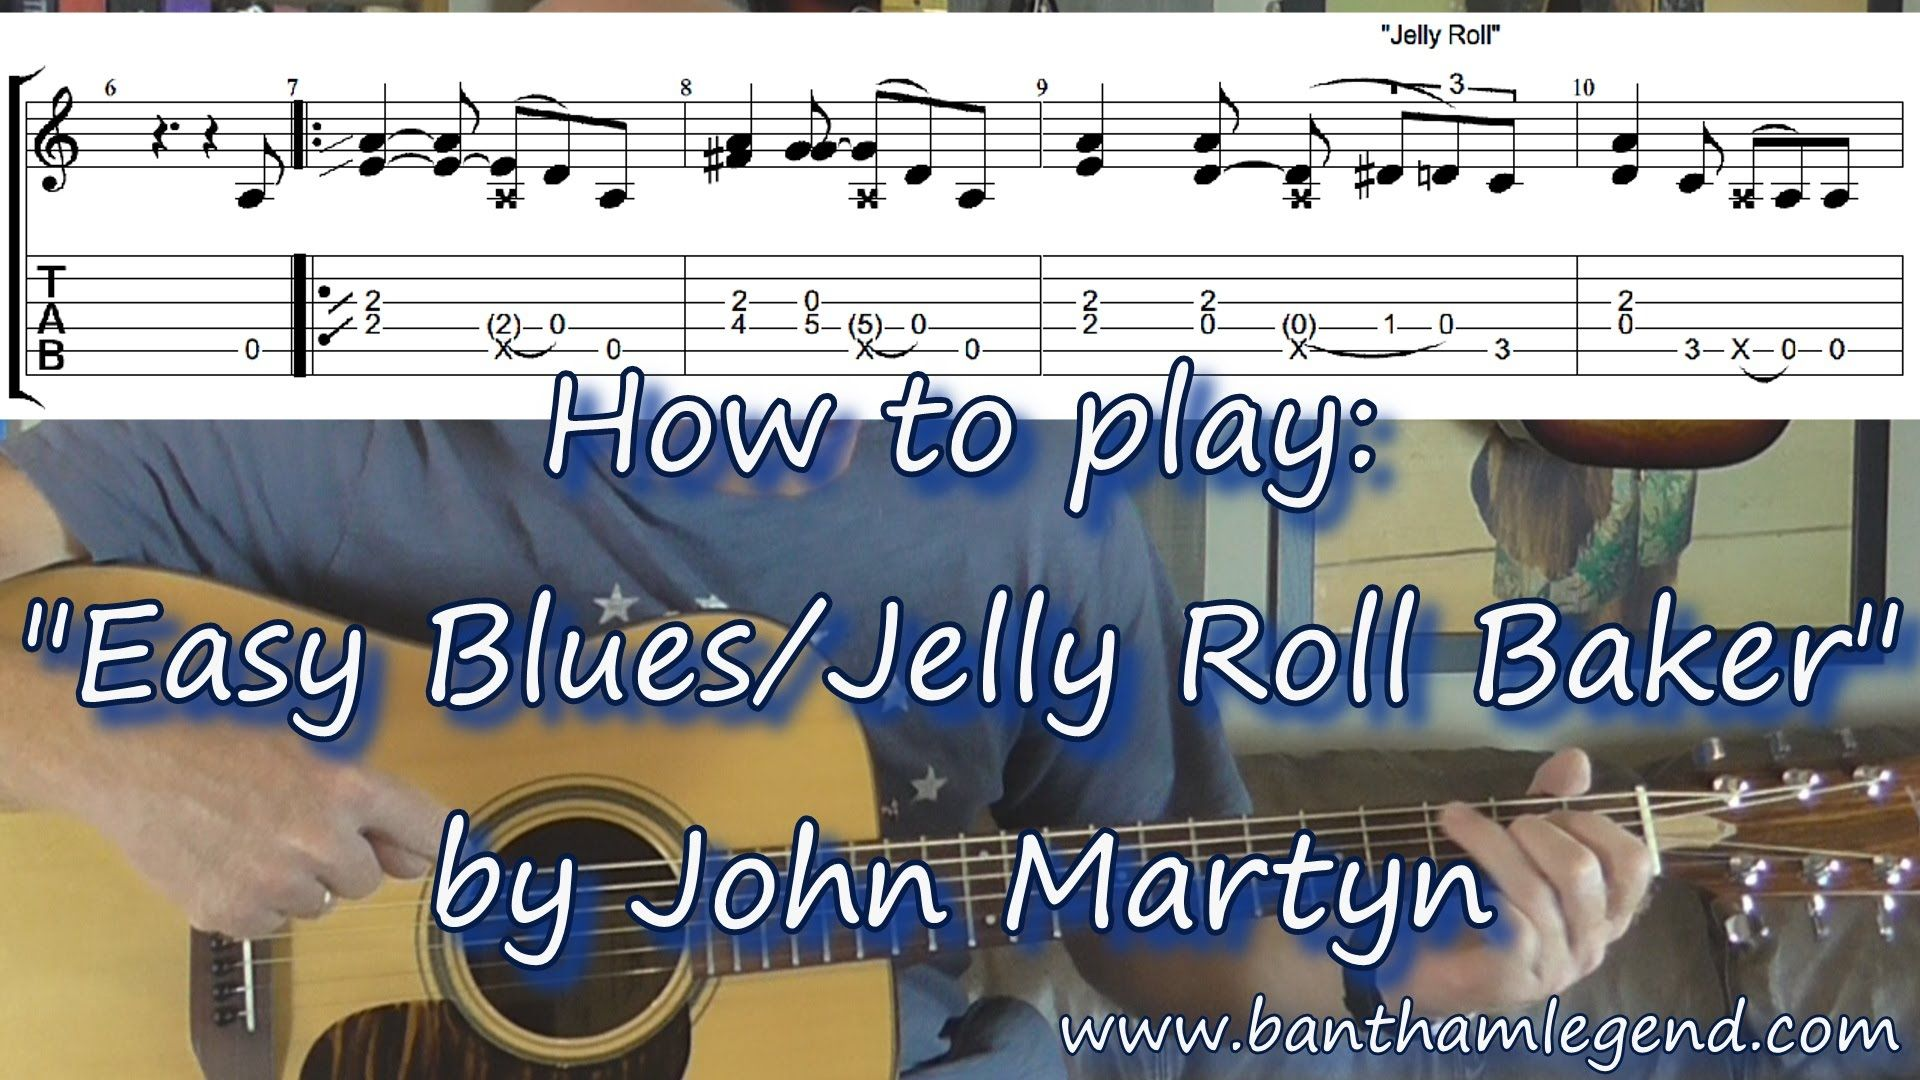 Easy Blues Jelly Roll Baker John Martyn Guitar Tab Tutorial